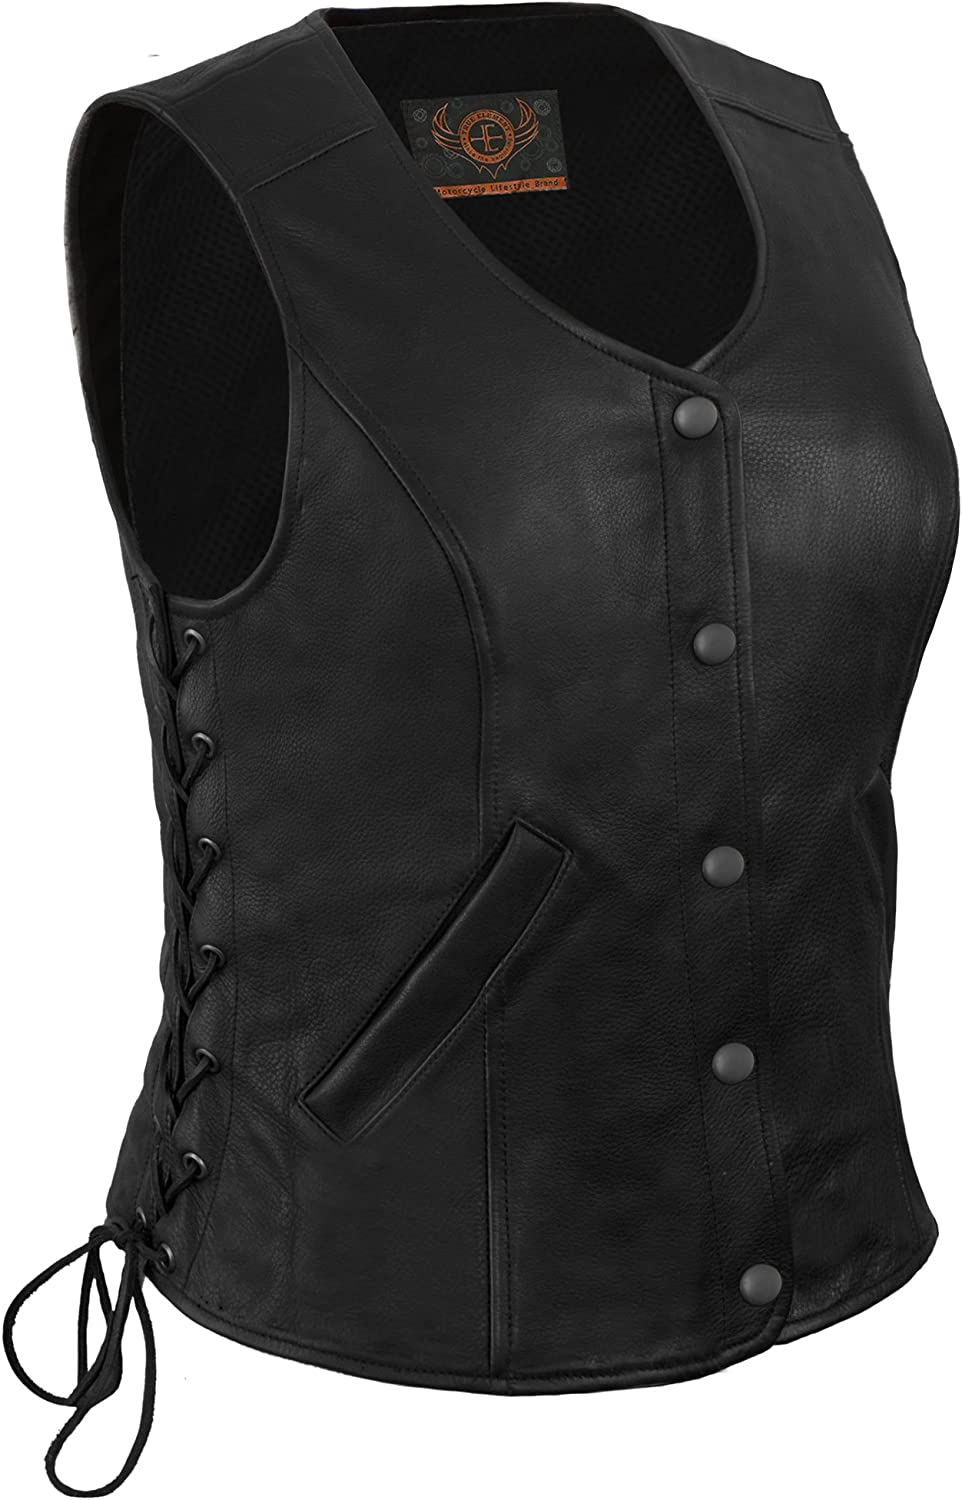 True Element おトク Womens Longer Length S Vest Leather 新作 人気 With Motorcycle